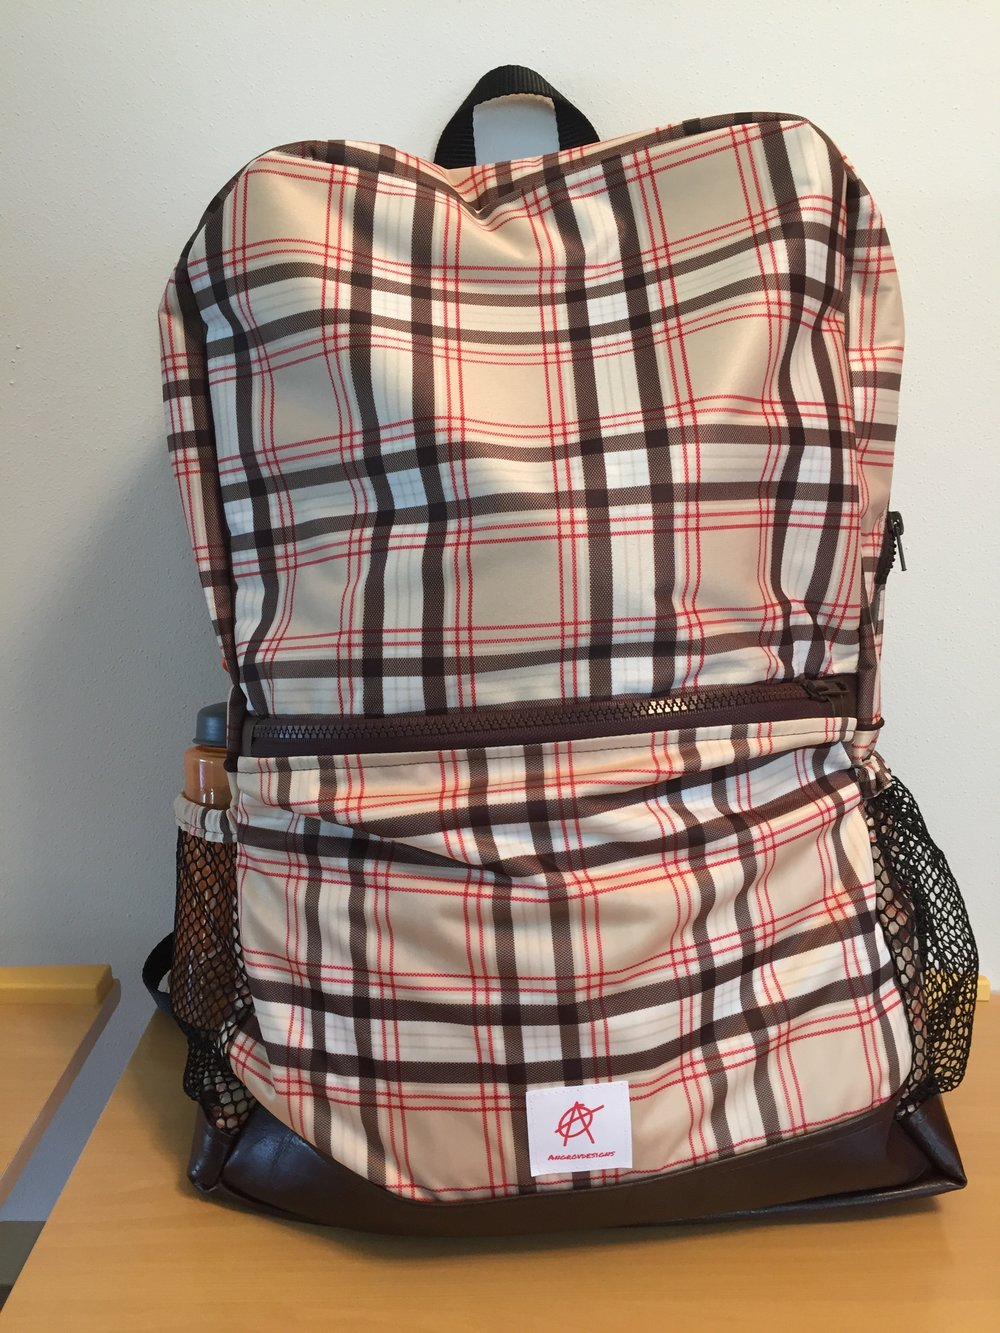 Burberry-ish Backpack